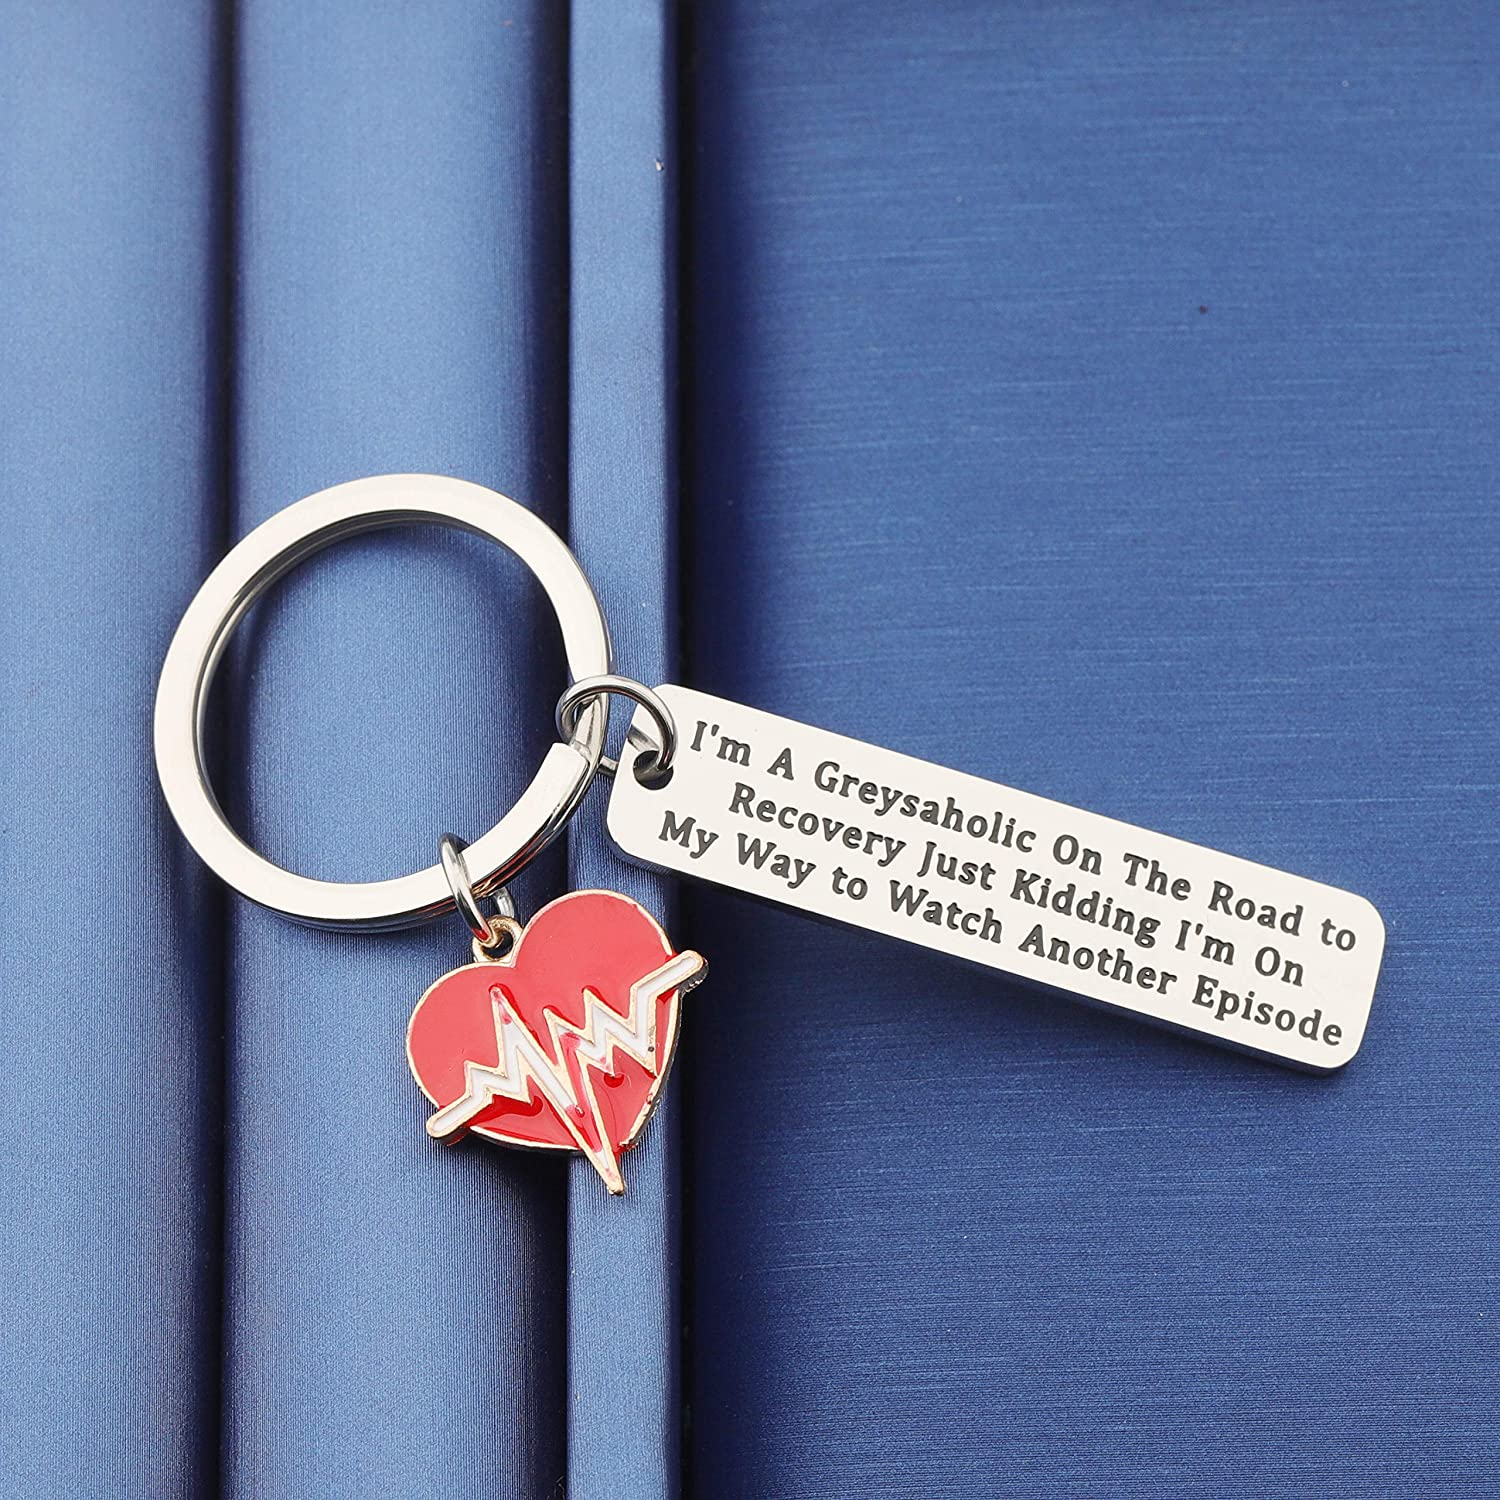 TGBJE I/'m A Greysaholic On The Road to Recovery Keychain Greys Anatomy Inspired Gift for Greys Anatomy Fans